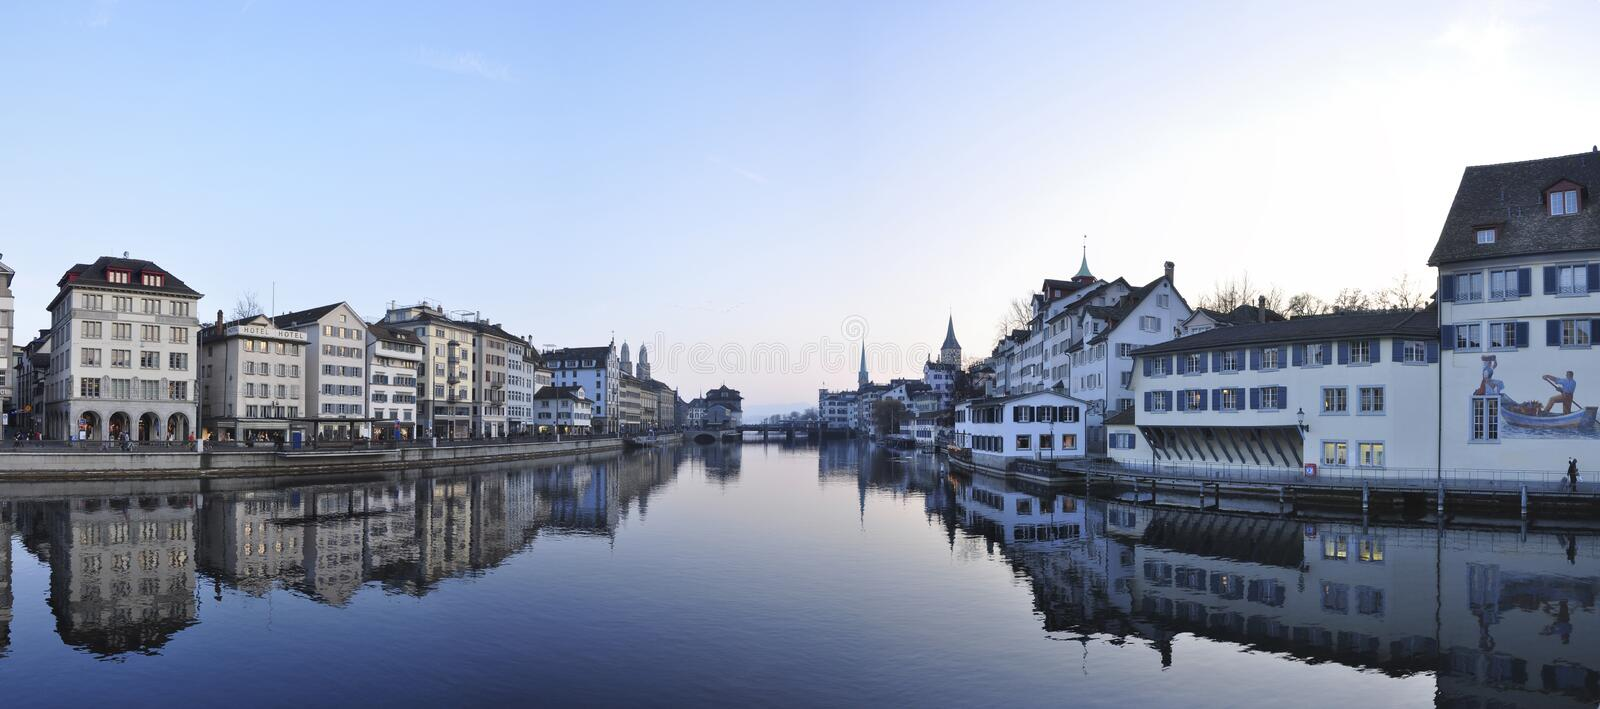 Zurich cityscape in dusk royalty free stock image